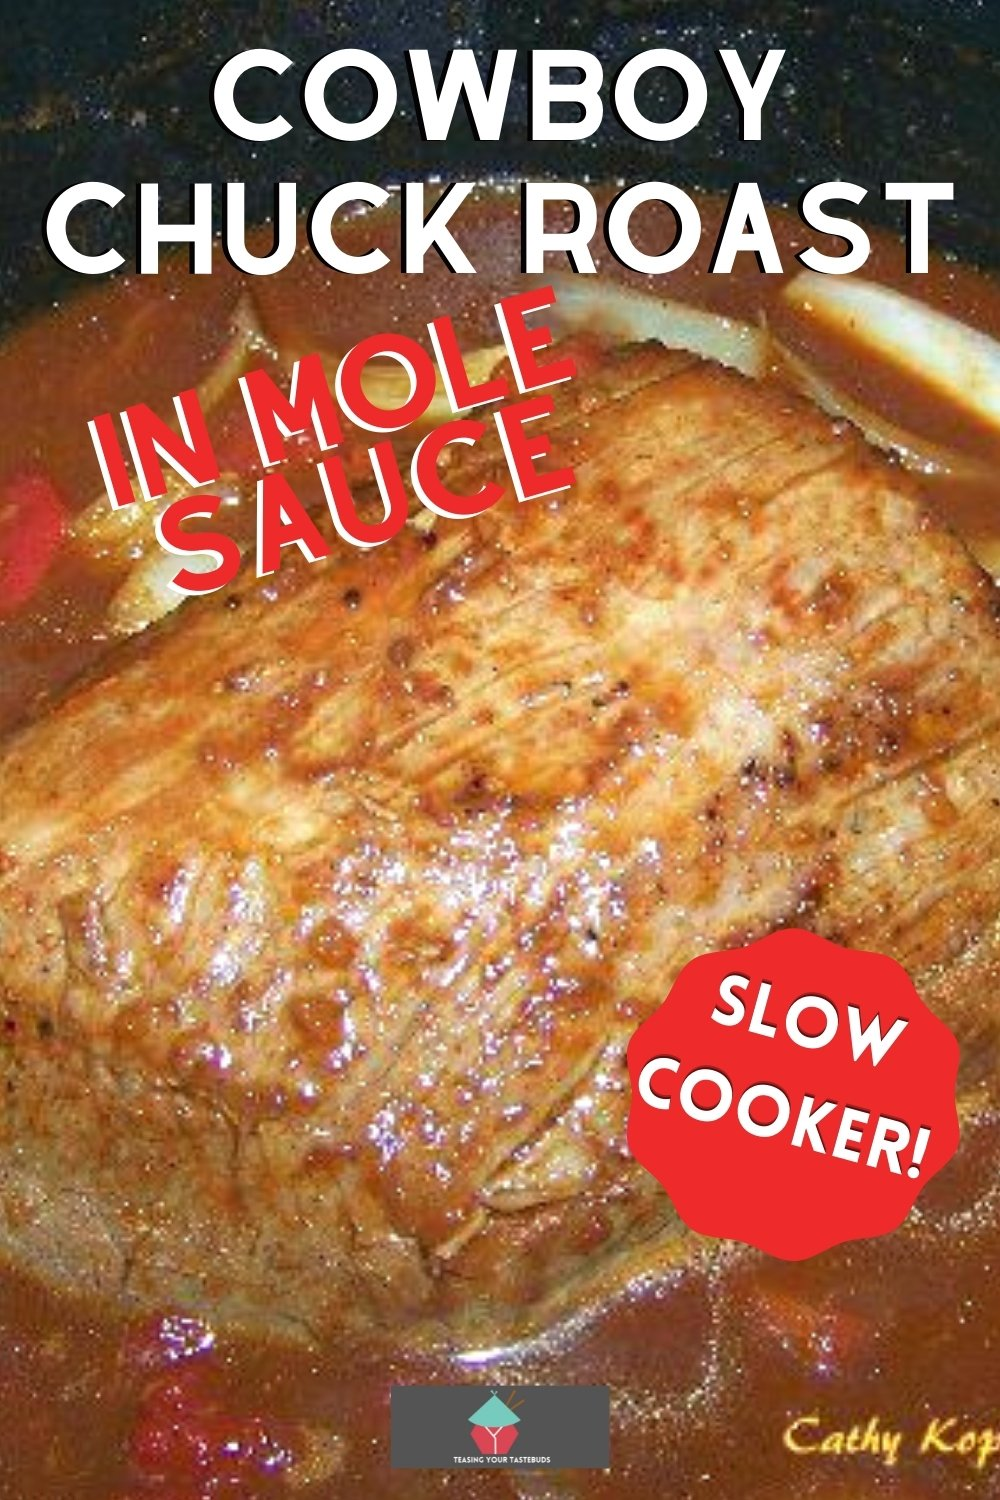 Cowboy Chuck Roast, an easy recipe for tender beef, slow cooked in onions and a rich Mexican mole sauce. Great slow cooker dinner recipe!